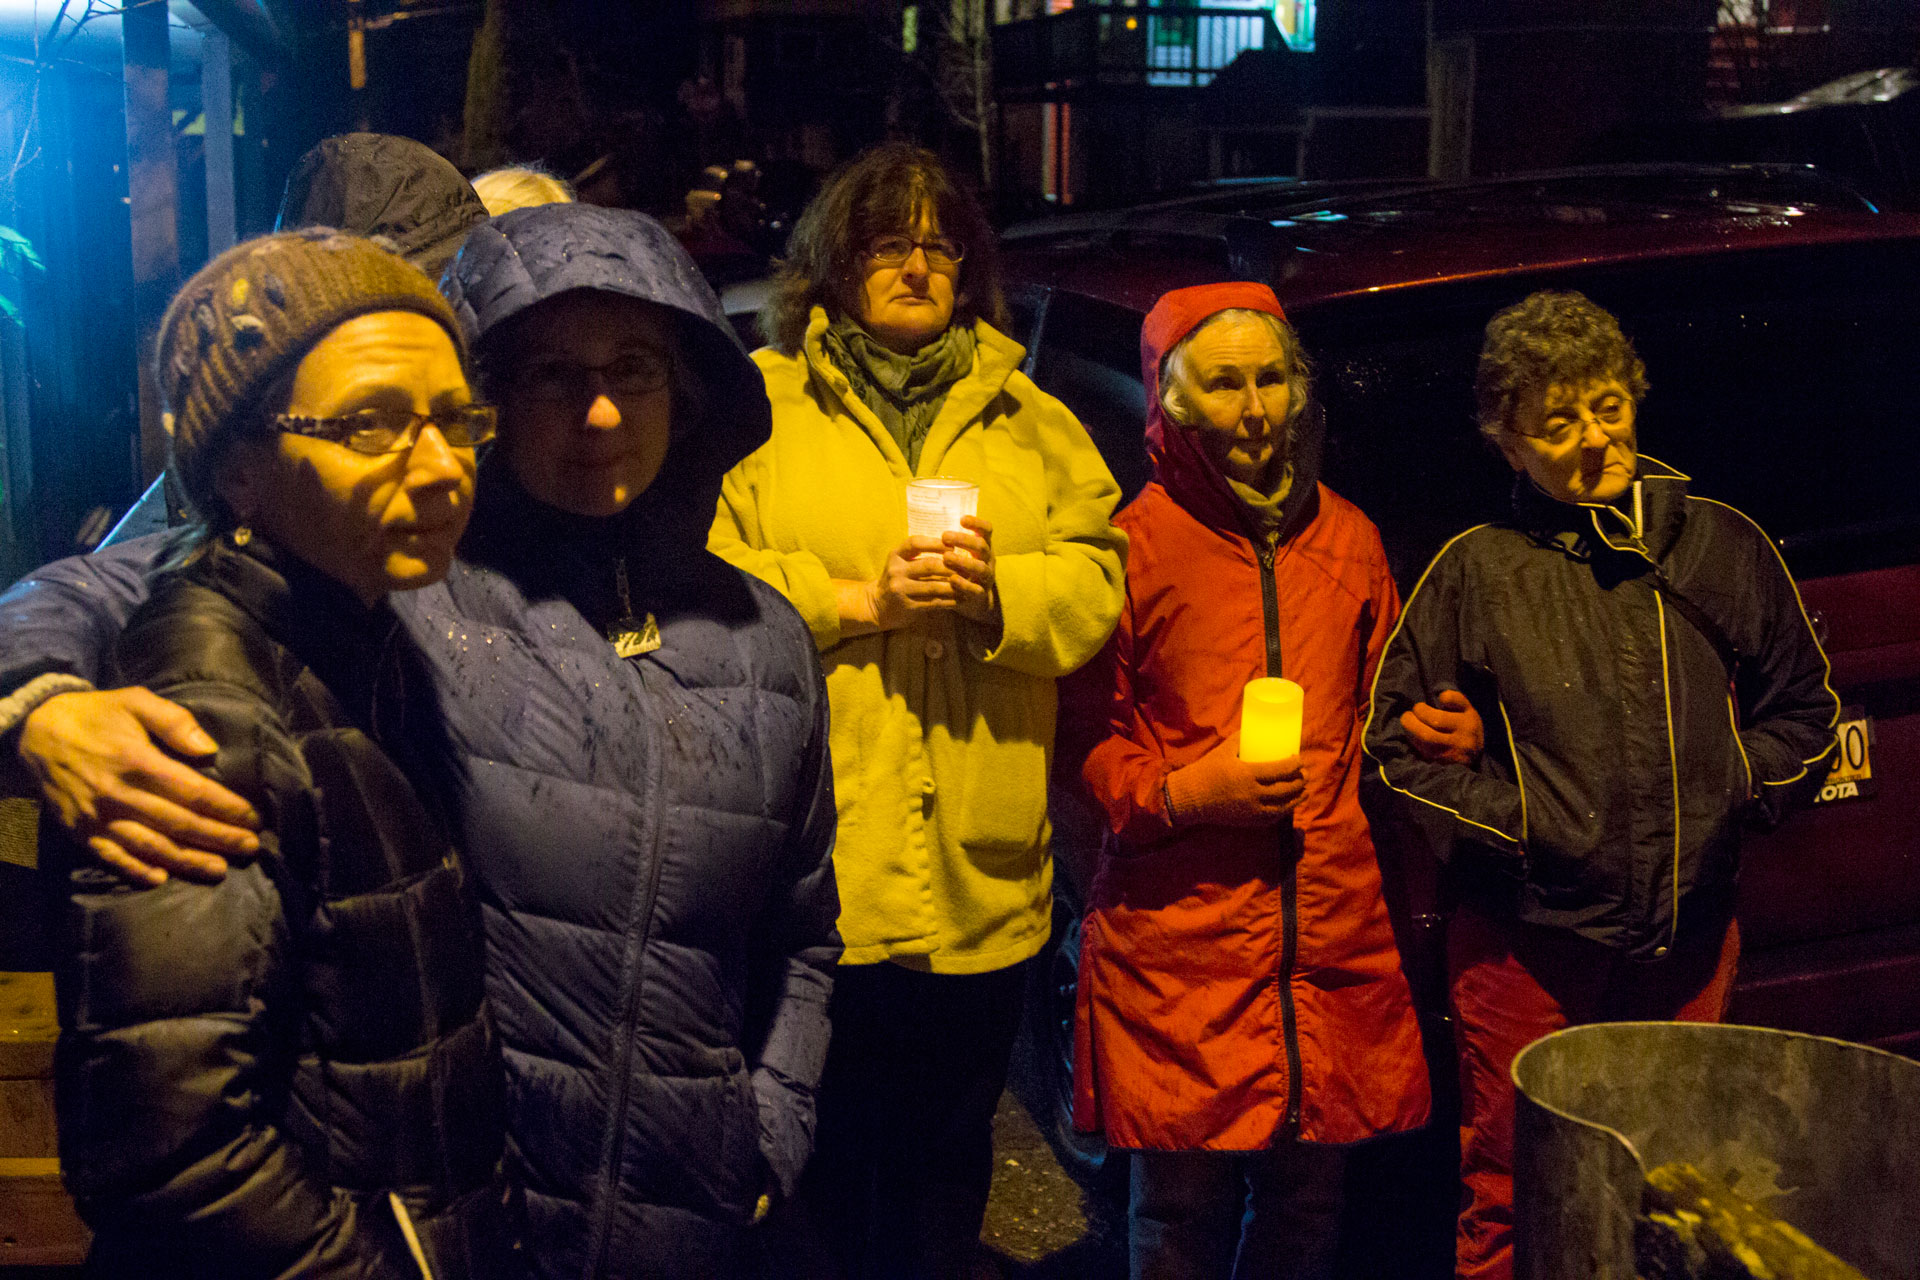 Neighbors gathered to remember Mayor Greg Fisk on Monday evening. They stood in silent respect, holding candles, as Fisk's body was removed from his home on Kennedy Street. (Photo by Mikko Wilson/KTOO)